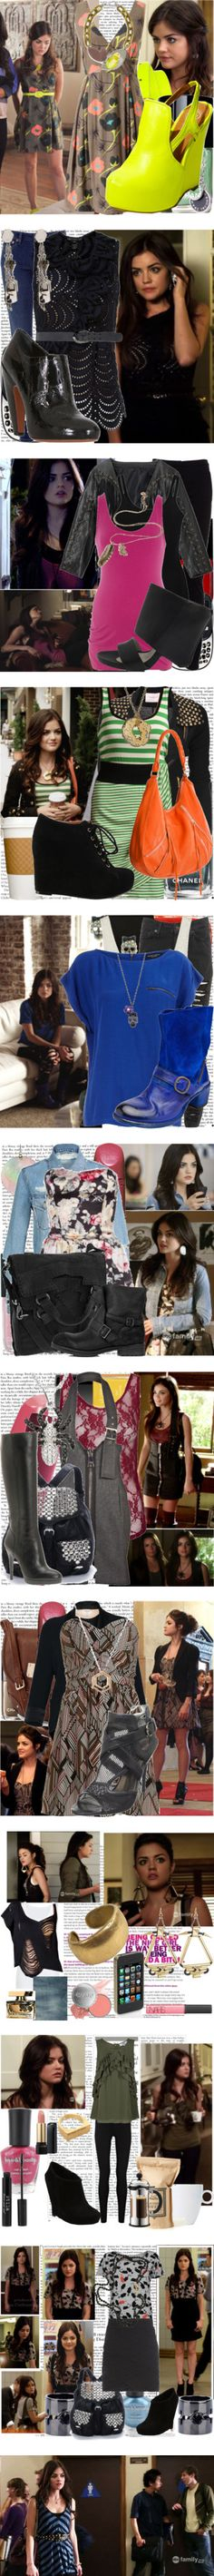 """aria montgomery style!"" by inezitacrazyforfashion ❤ liked on Polyvore"